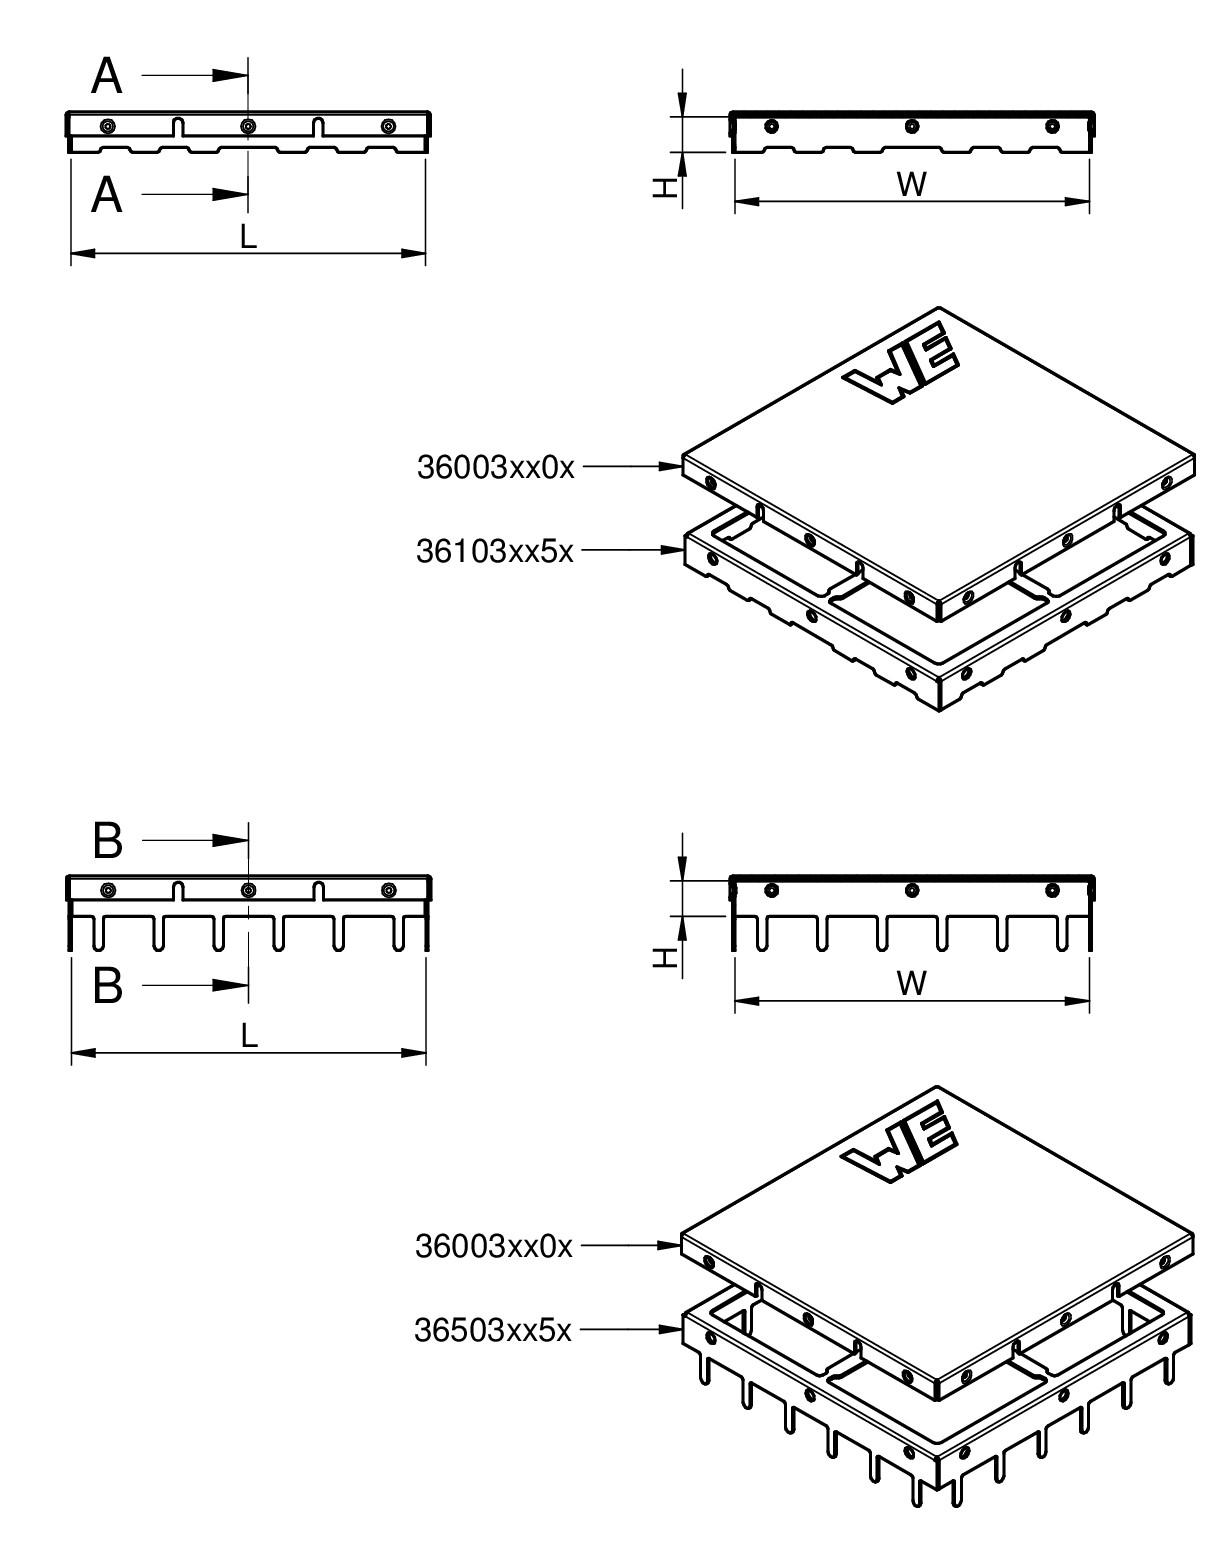 WE-SHC Shielding Cabinet Dimensions